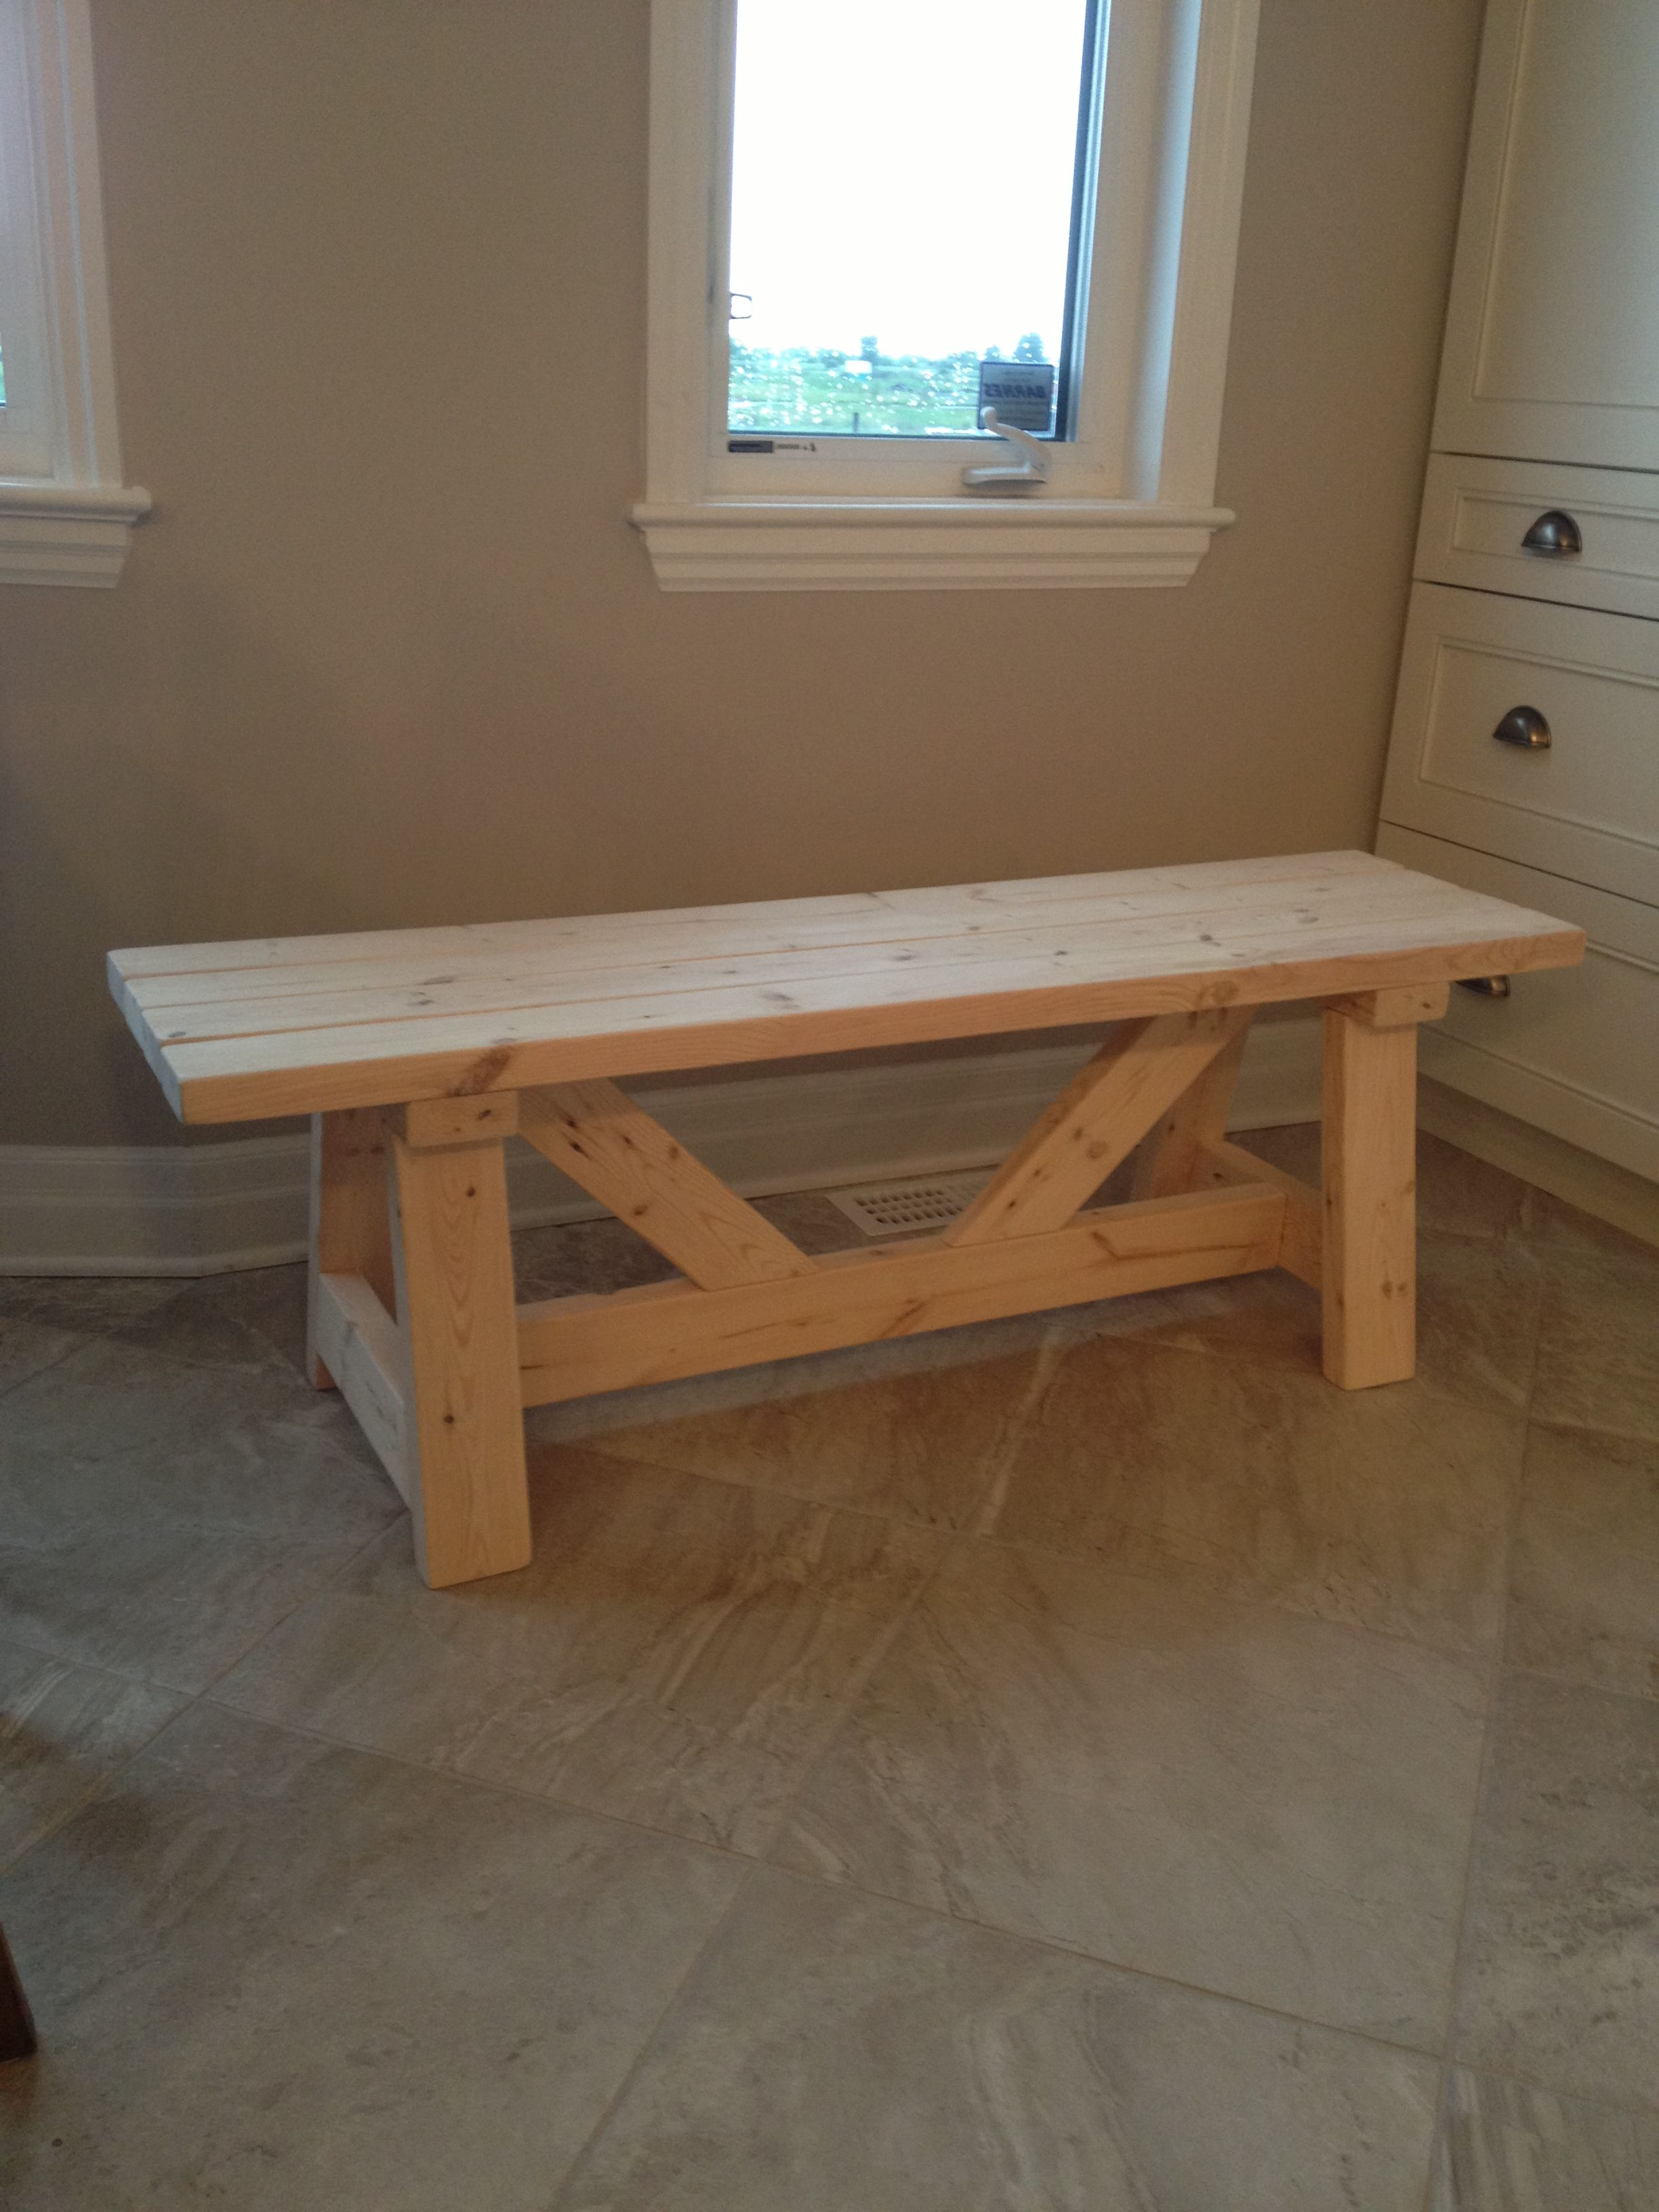 Current Falmer 3 Piece Solid Wood Dining Sets Inside Farmhouse Bench In 1 Day (View 14 of 25)